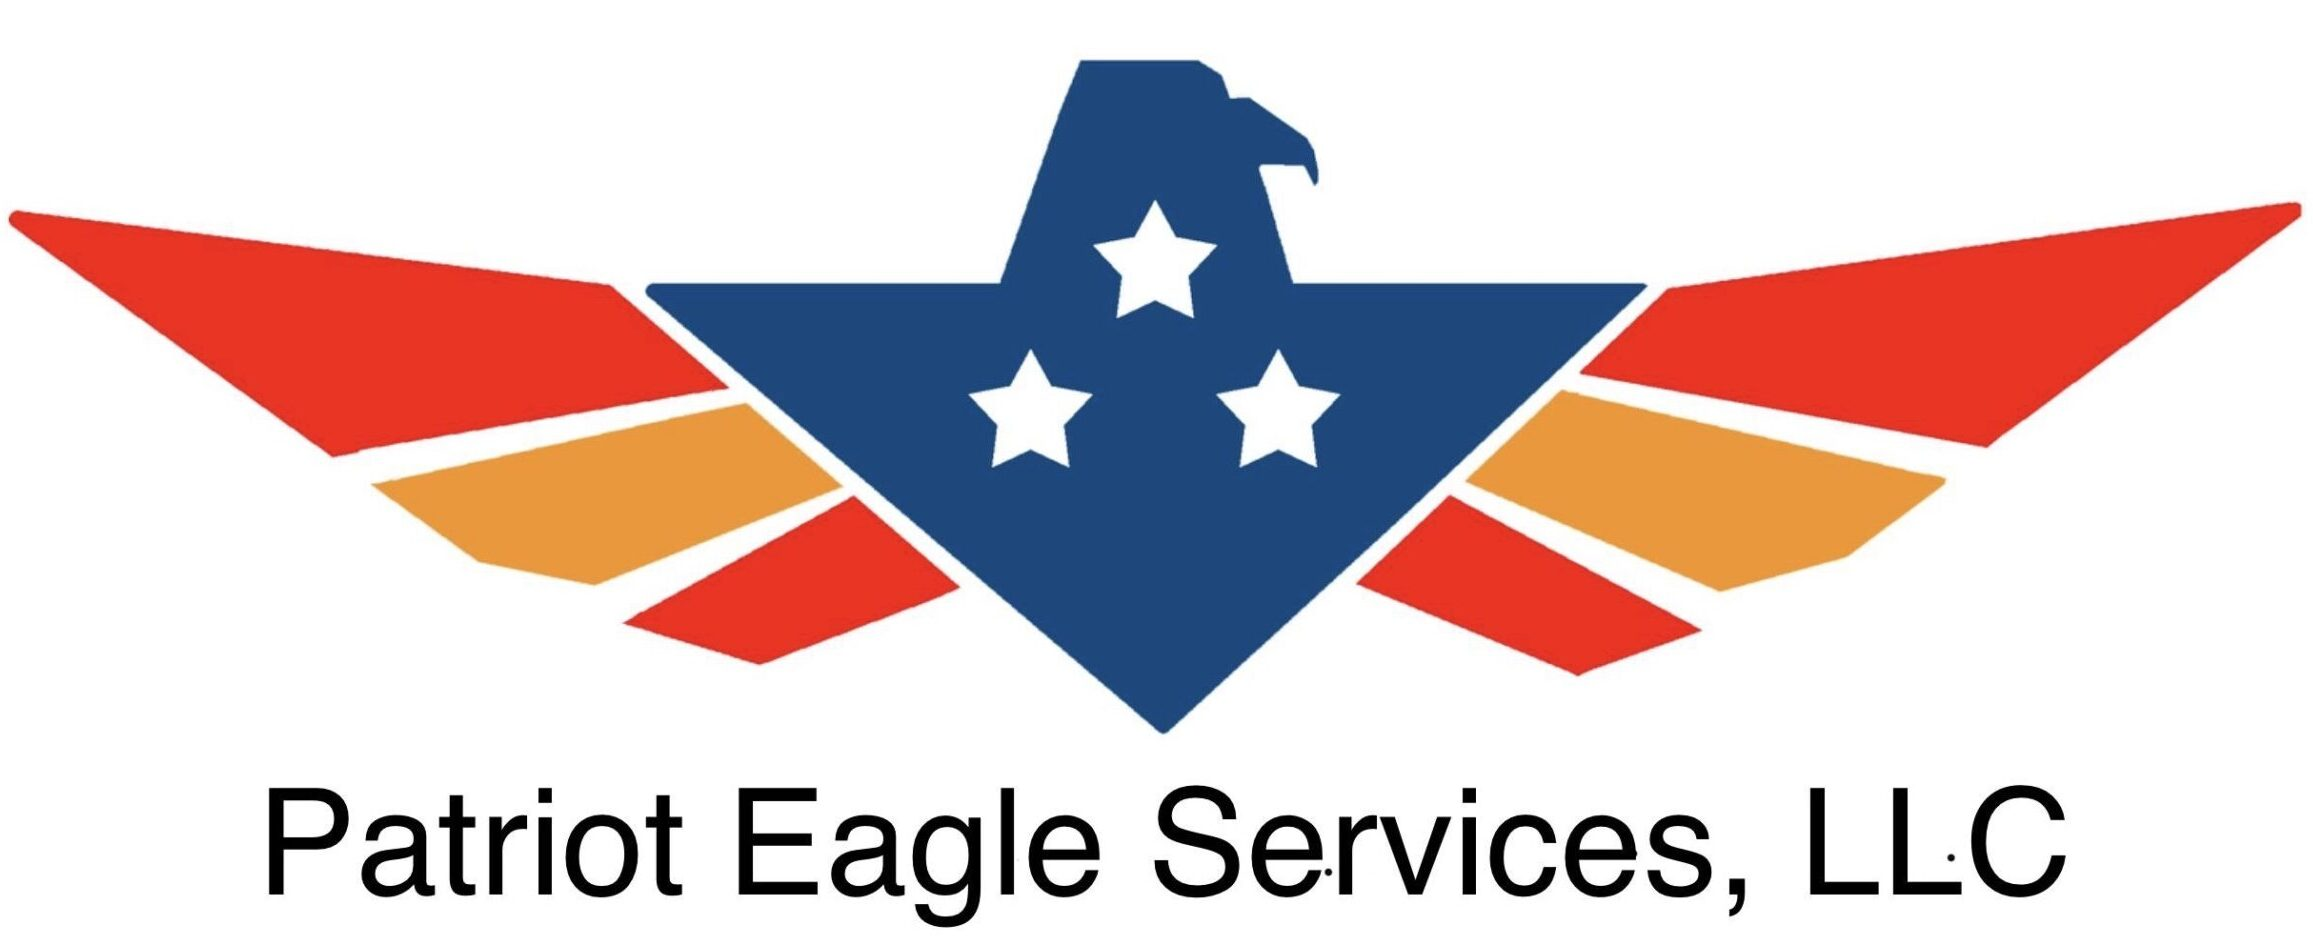 Patriot Eagle Services, LLC